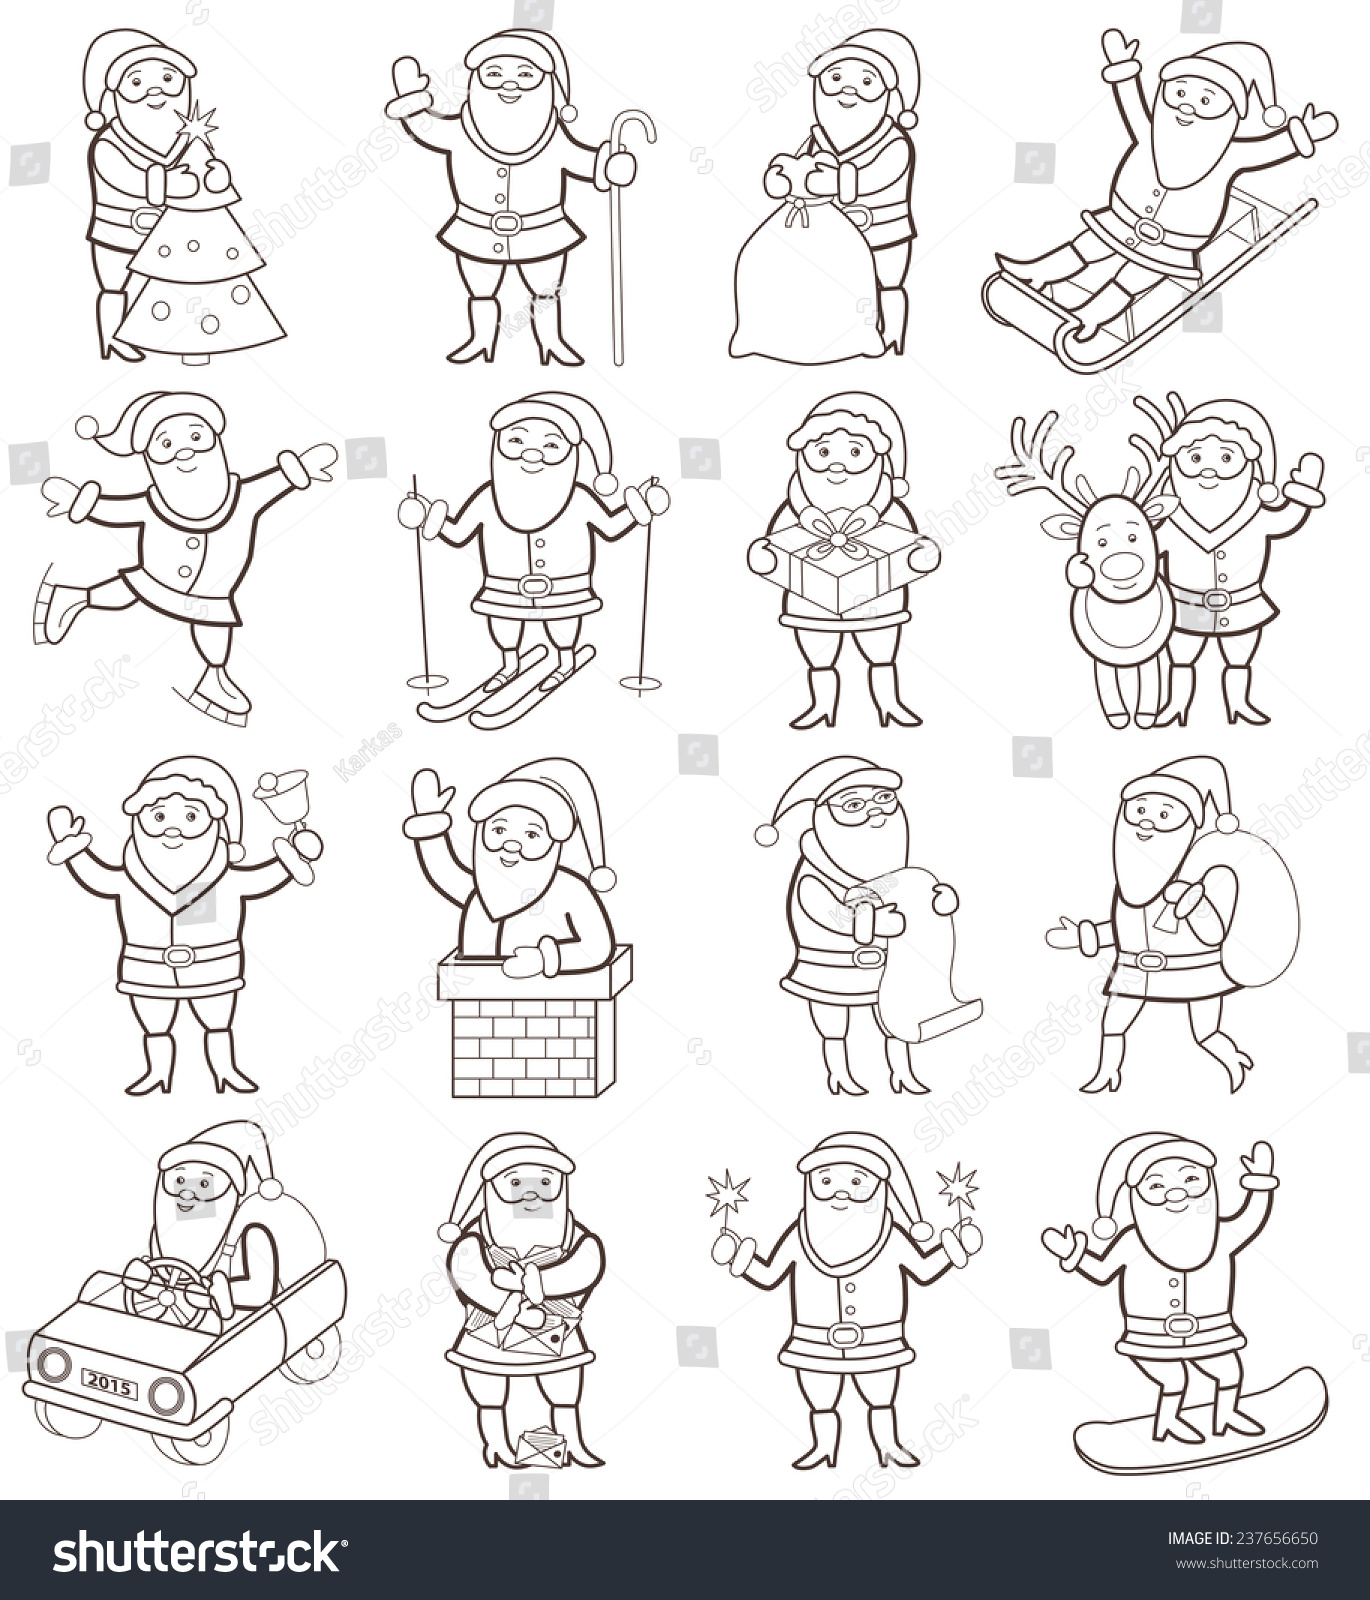 set of christmas icons with santa claus coloring book - Santa Claus Coloring Book